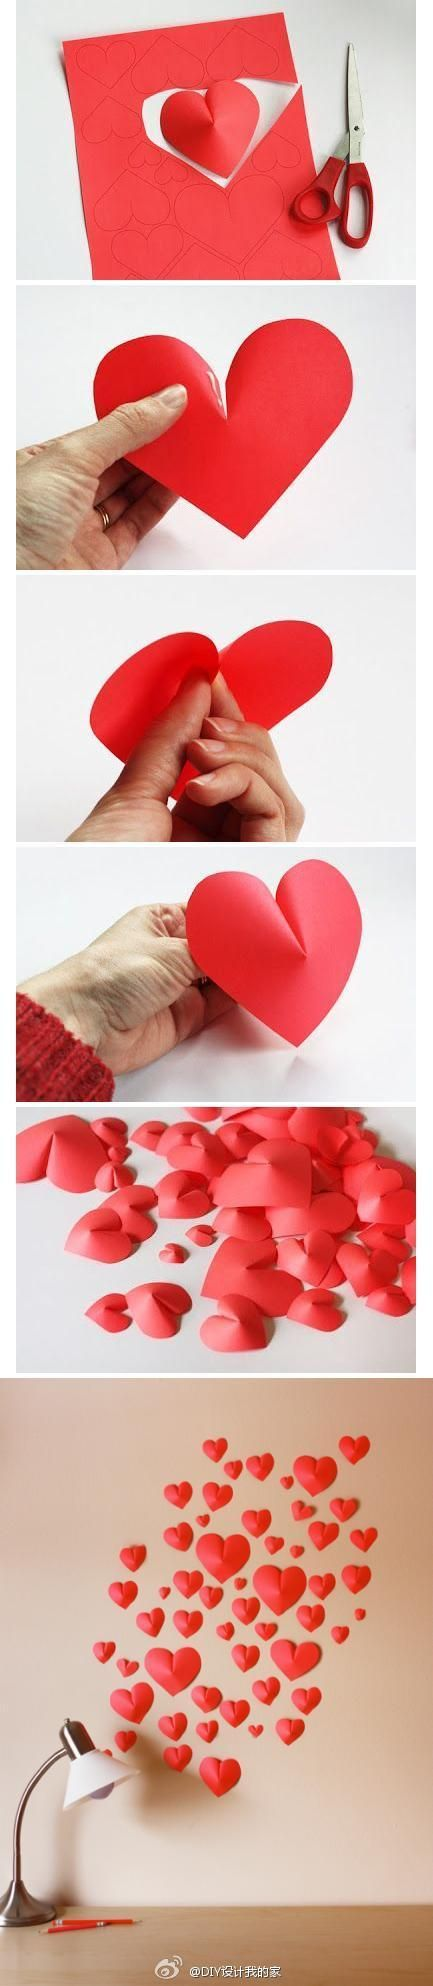 DIY :: Make a 3D Paper Heart For Decoration